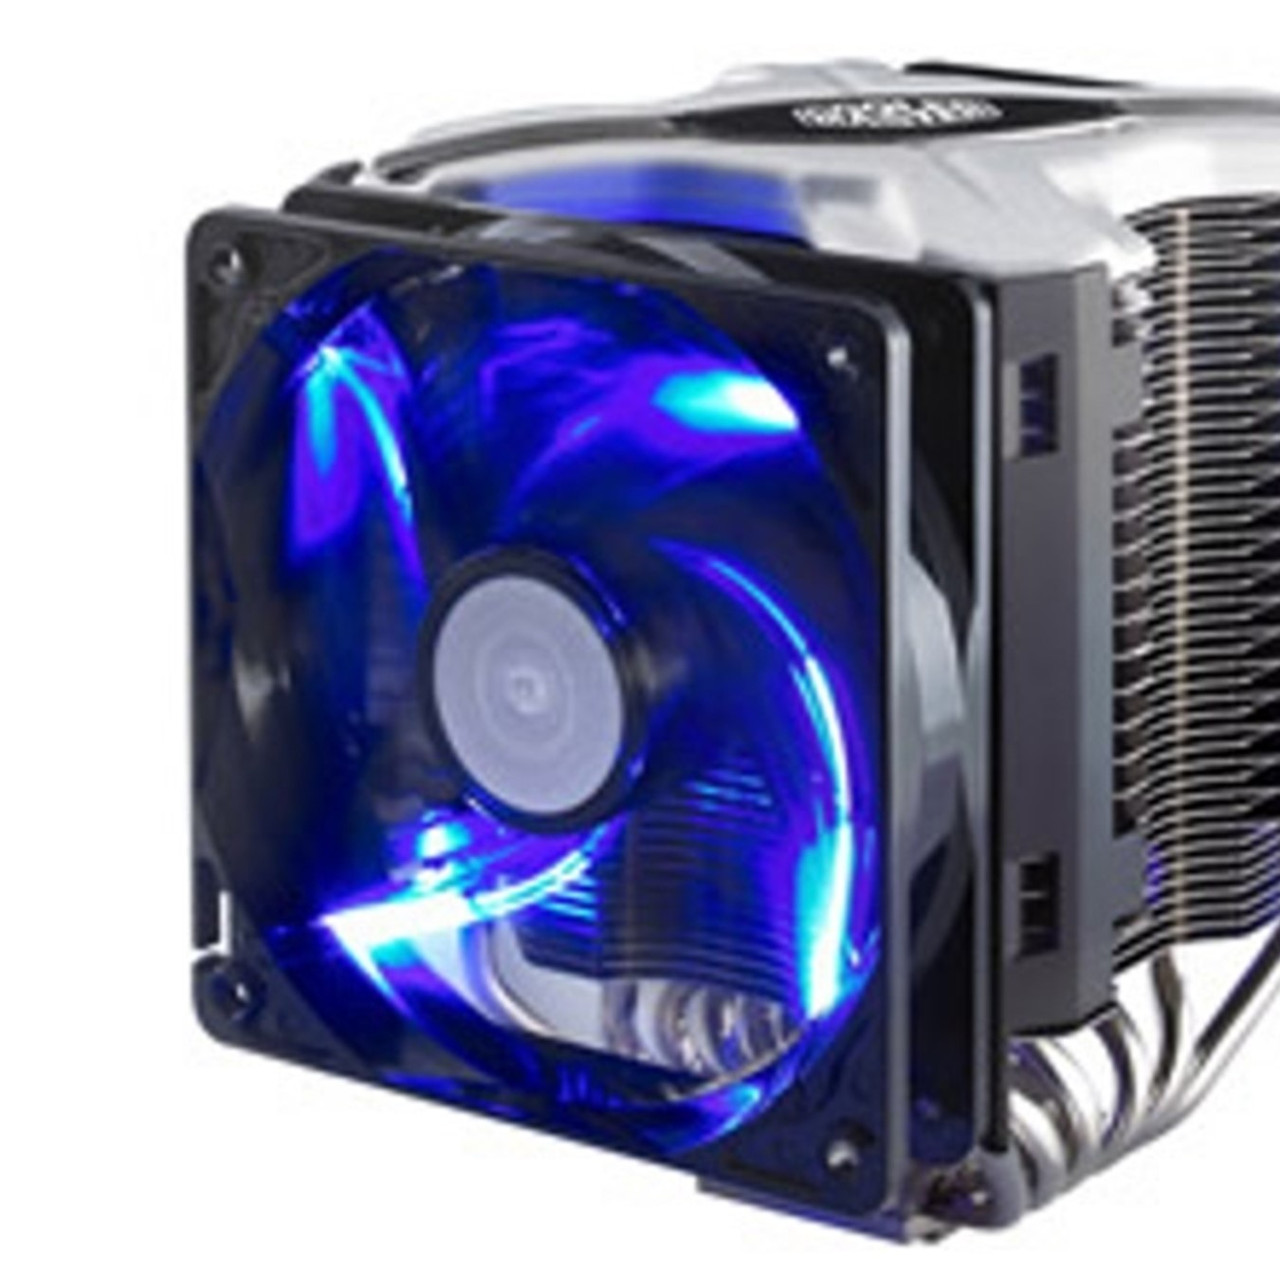 Вентилятор для корпуса CoolerMaster SickleFlow 120 Blue LED (R4-L2R-20AC-GP)